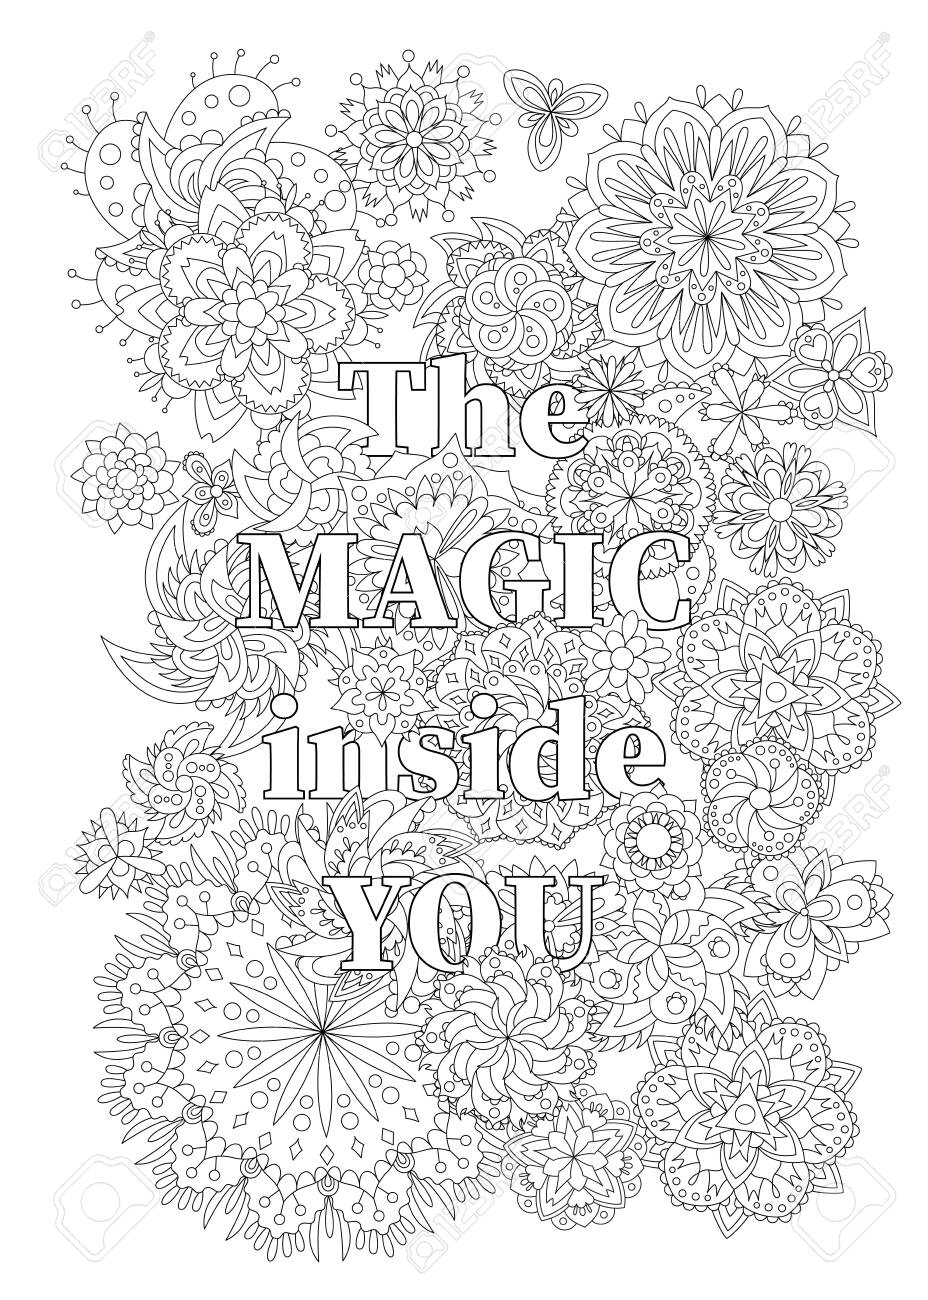 Vector coloring book for adults with inspiring text and mandala flowers in the zentagle style. The magic inside you - 147797452